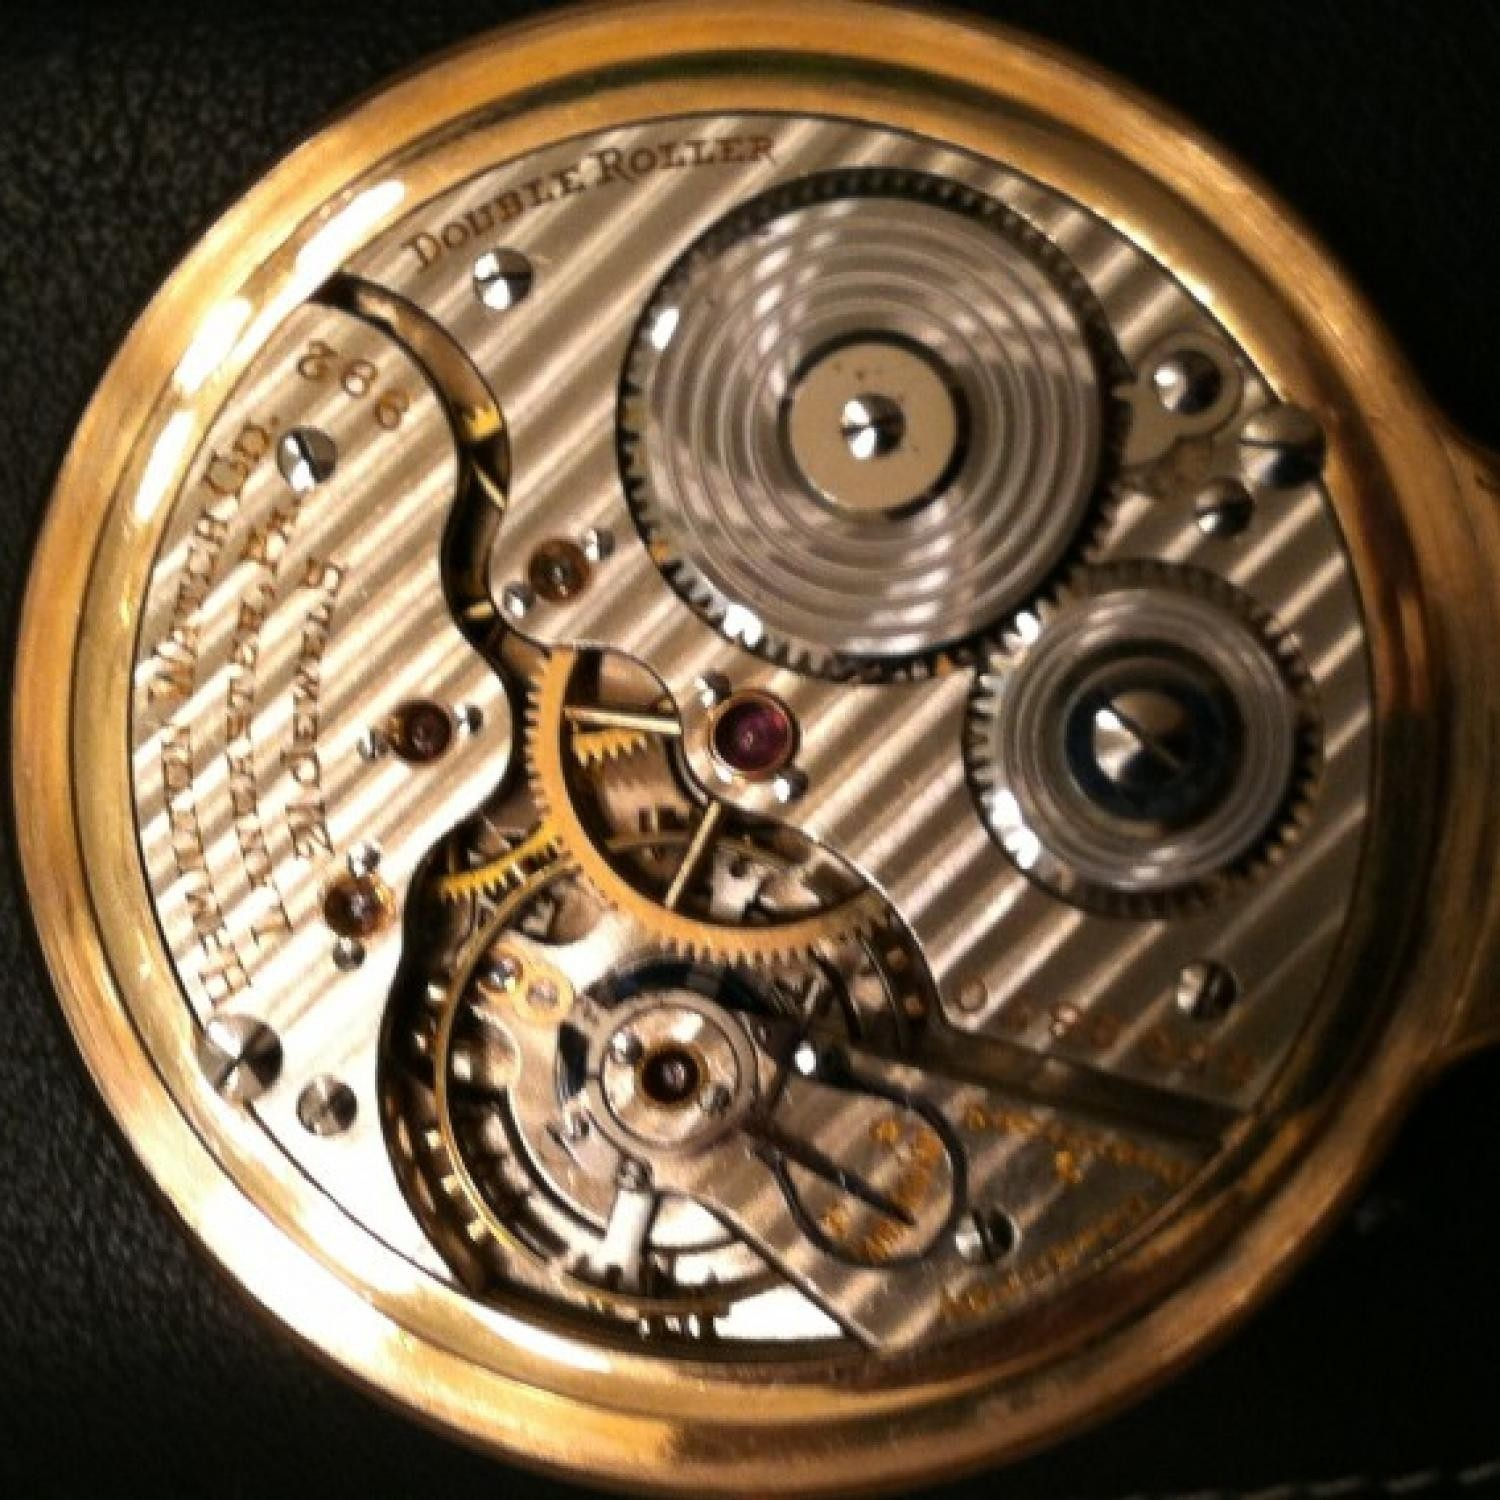 Image of Hamilton 992 #2503870 Movement